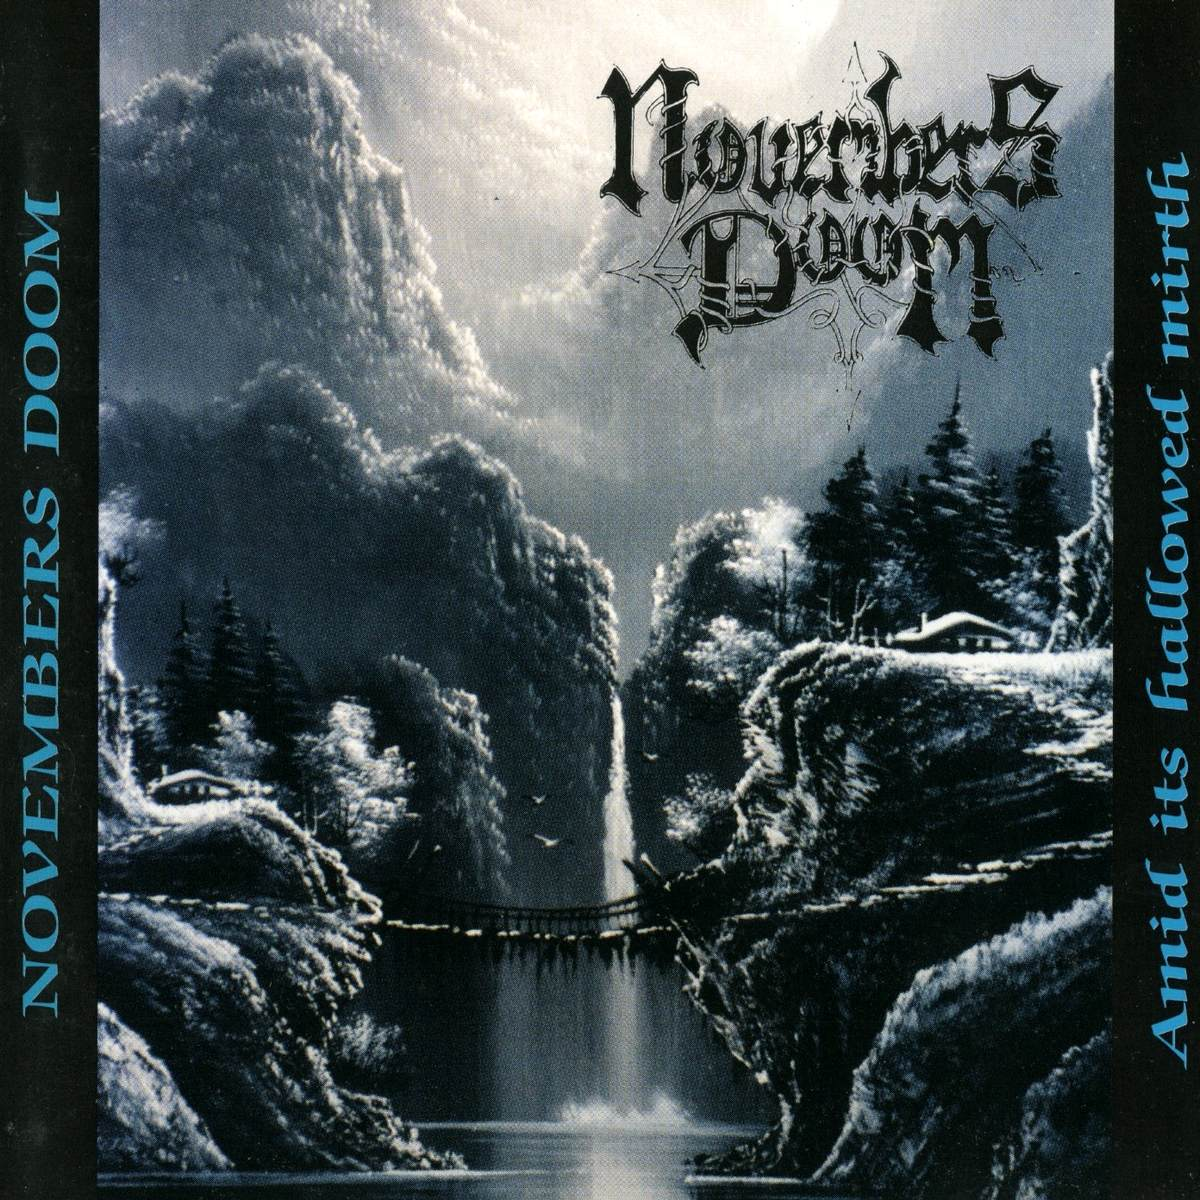 Novembers Doom - Amid Its Hallowed Mirth